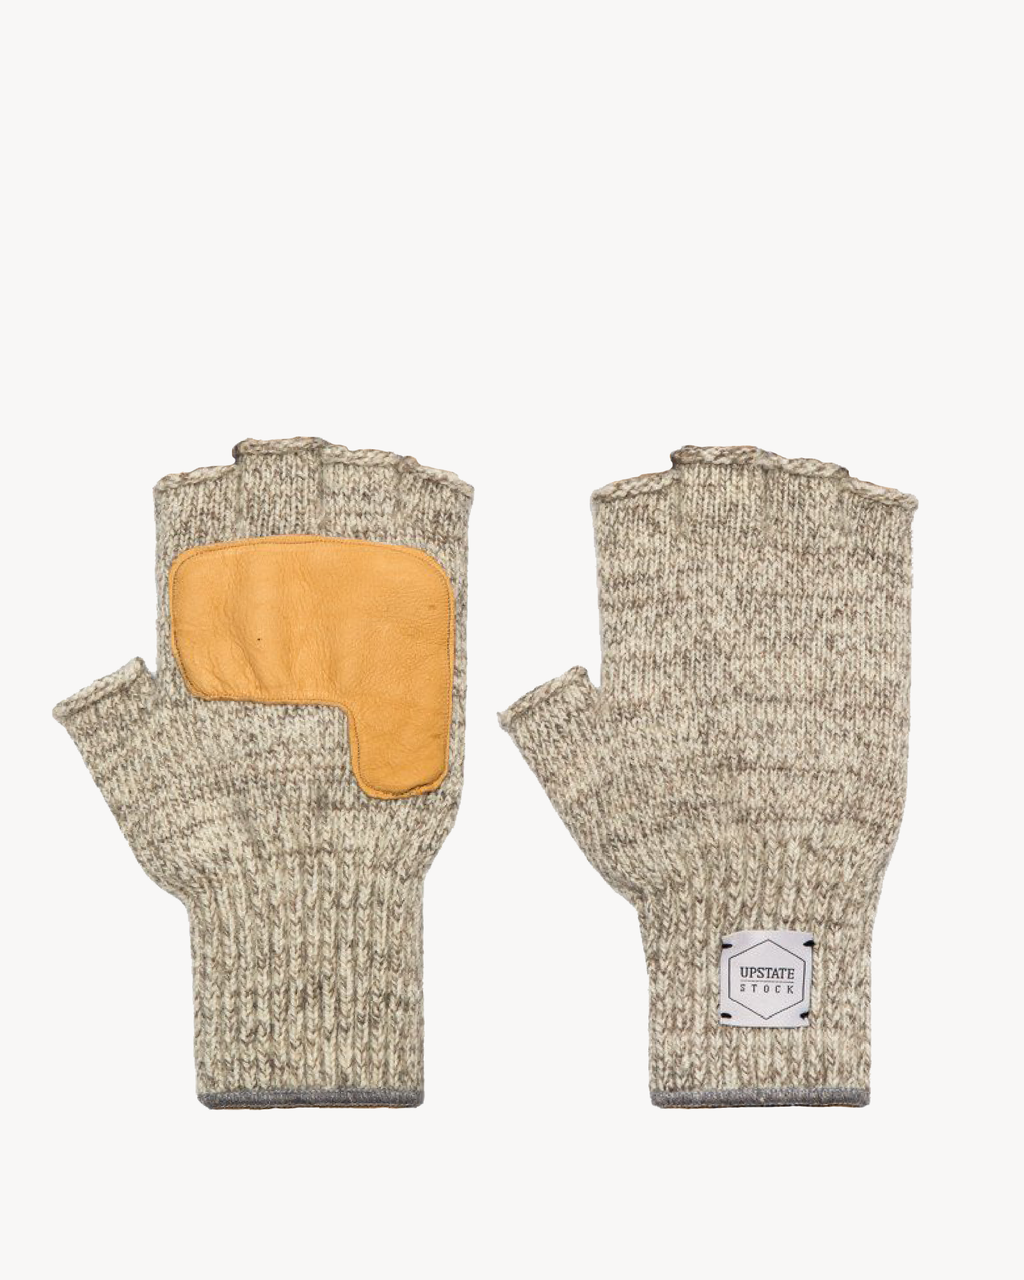 Oatmeal Melange Fingerless Glove with Natural Deerskin Palm